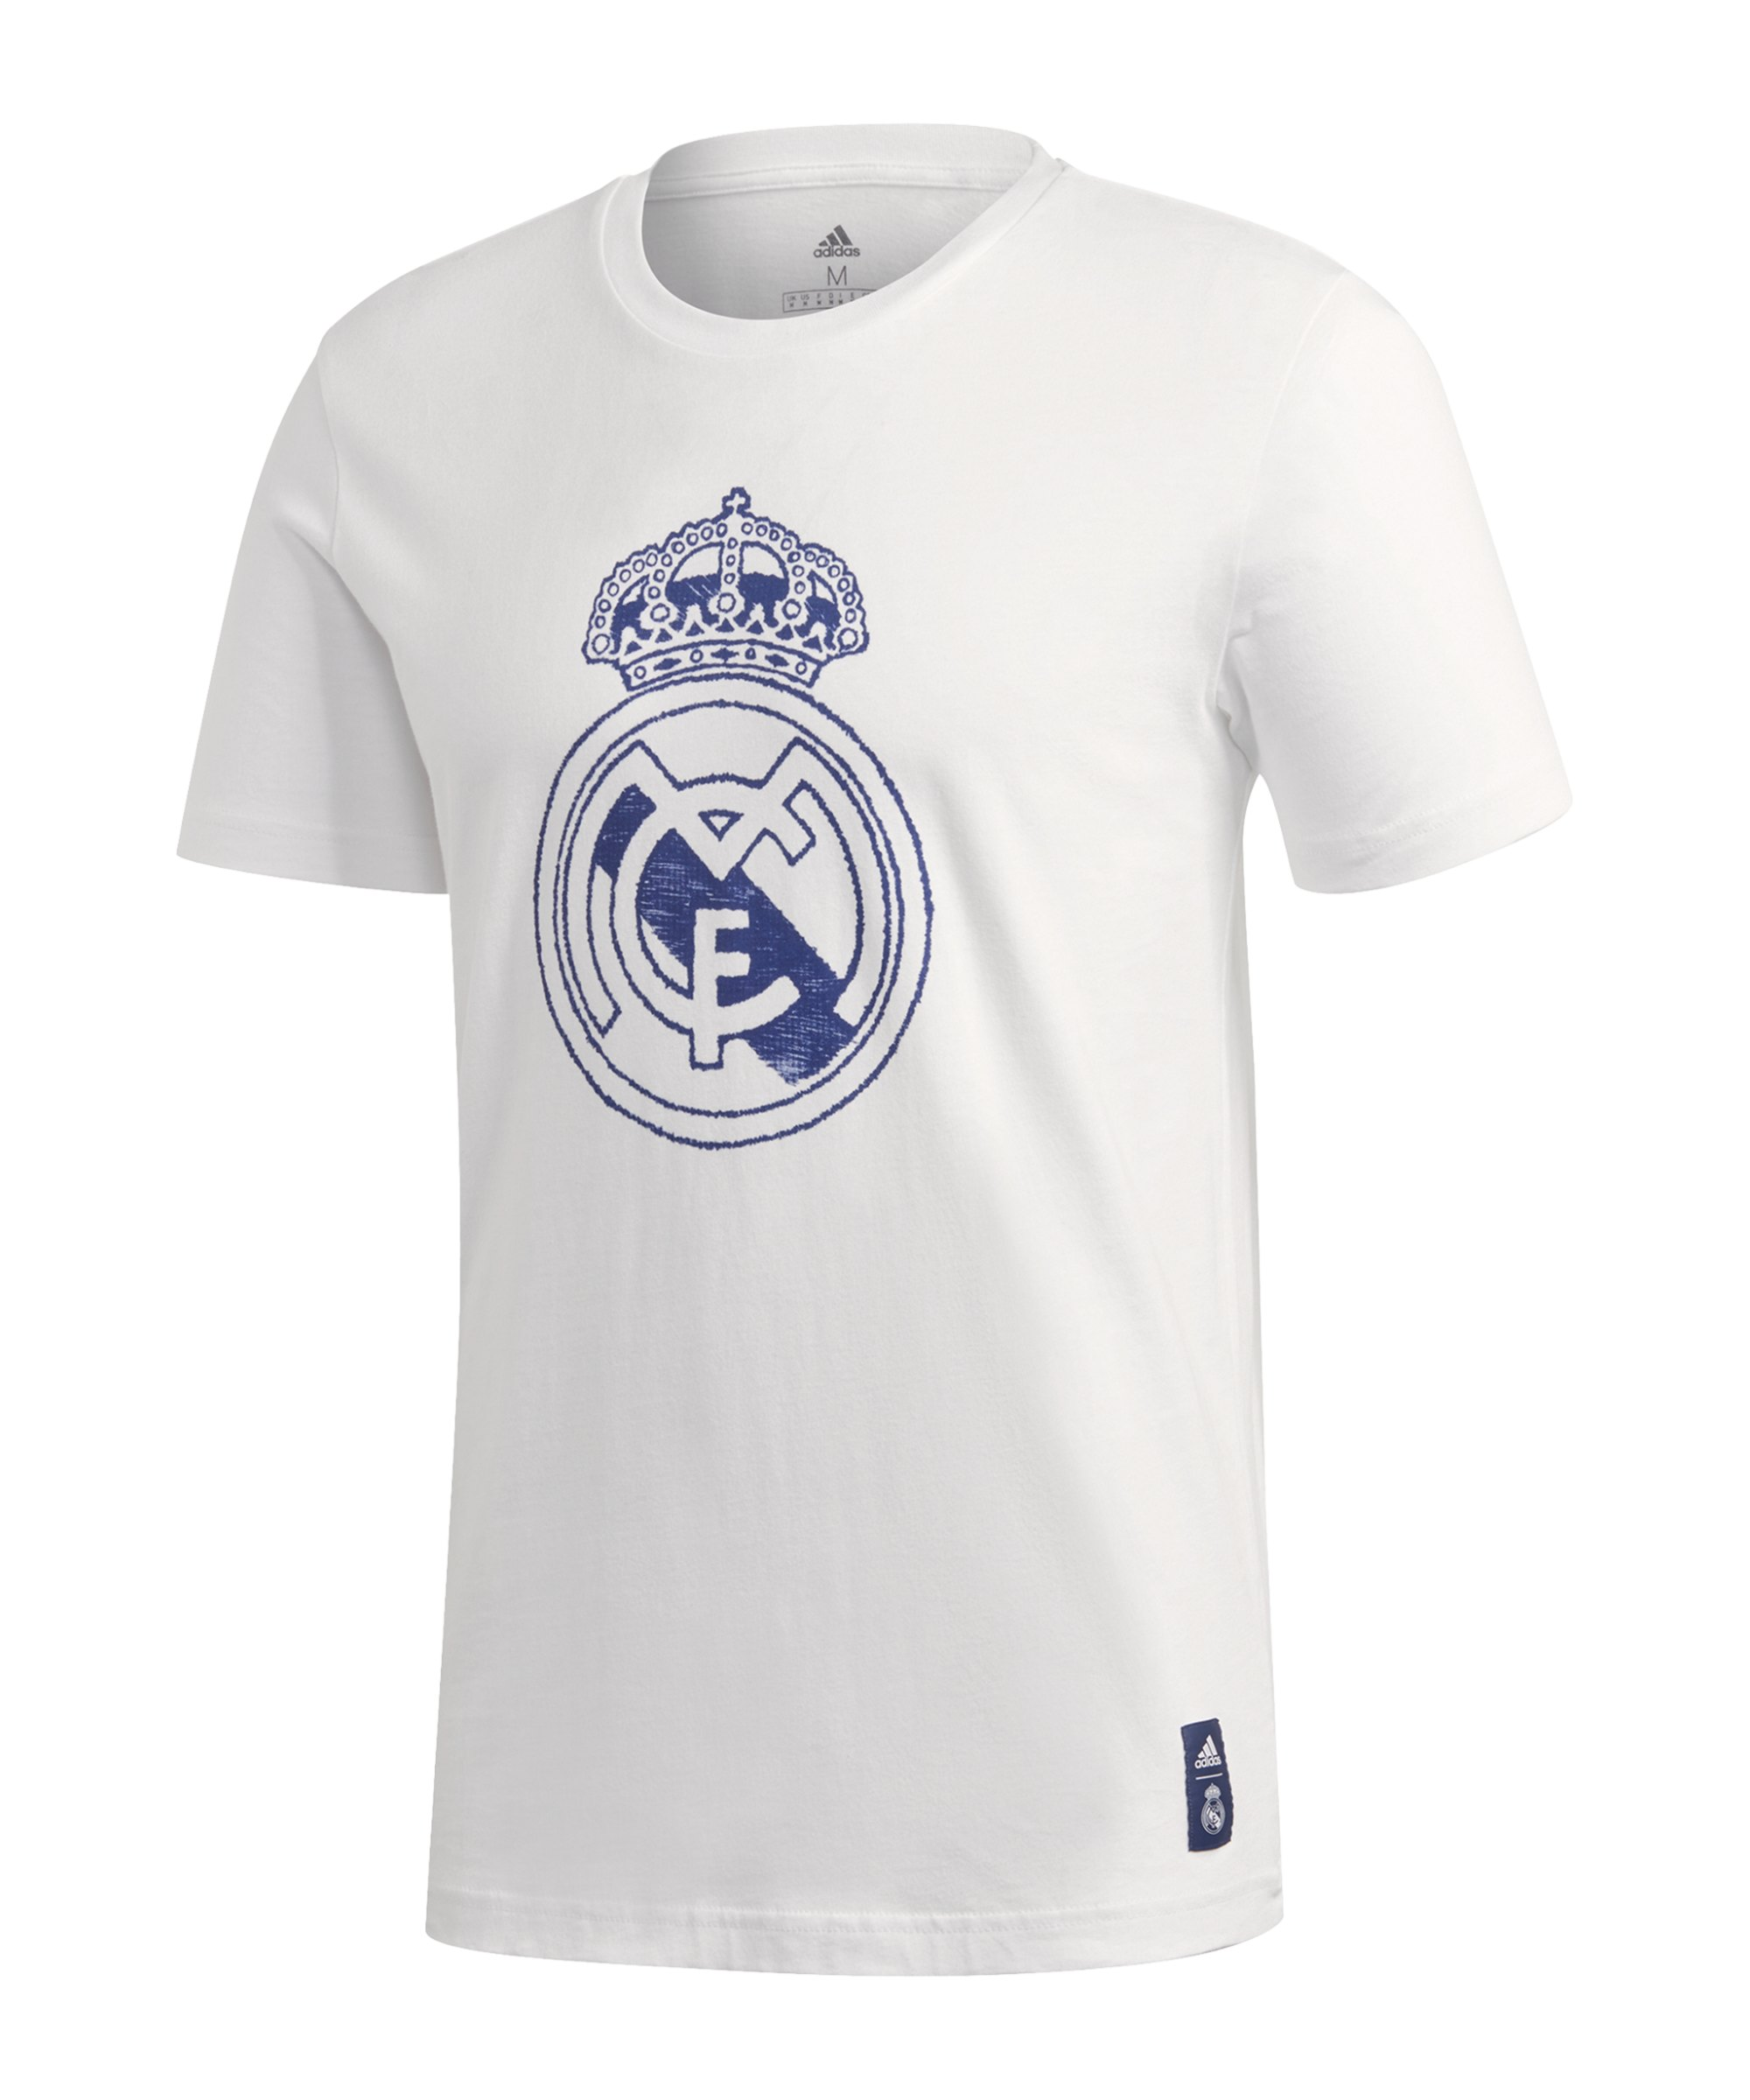 adidas Real Madrid DNA Graphic T-Shirt Weiss Blau - weiss